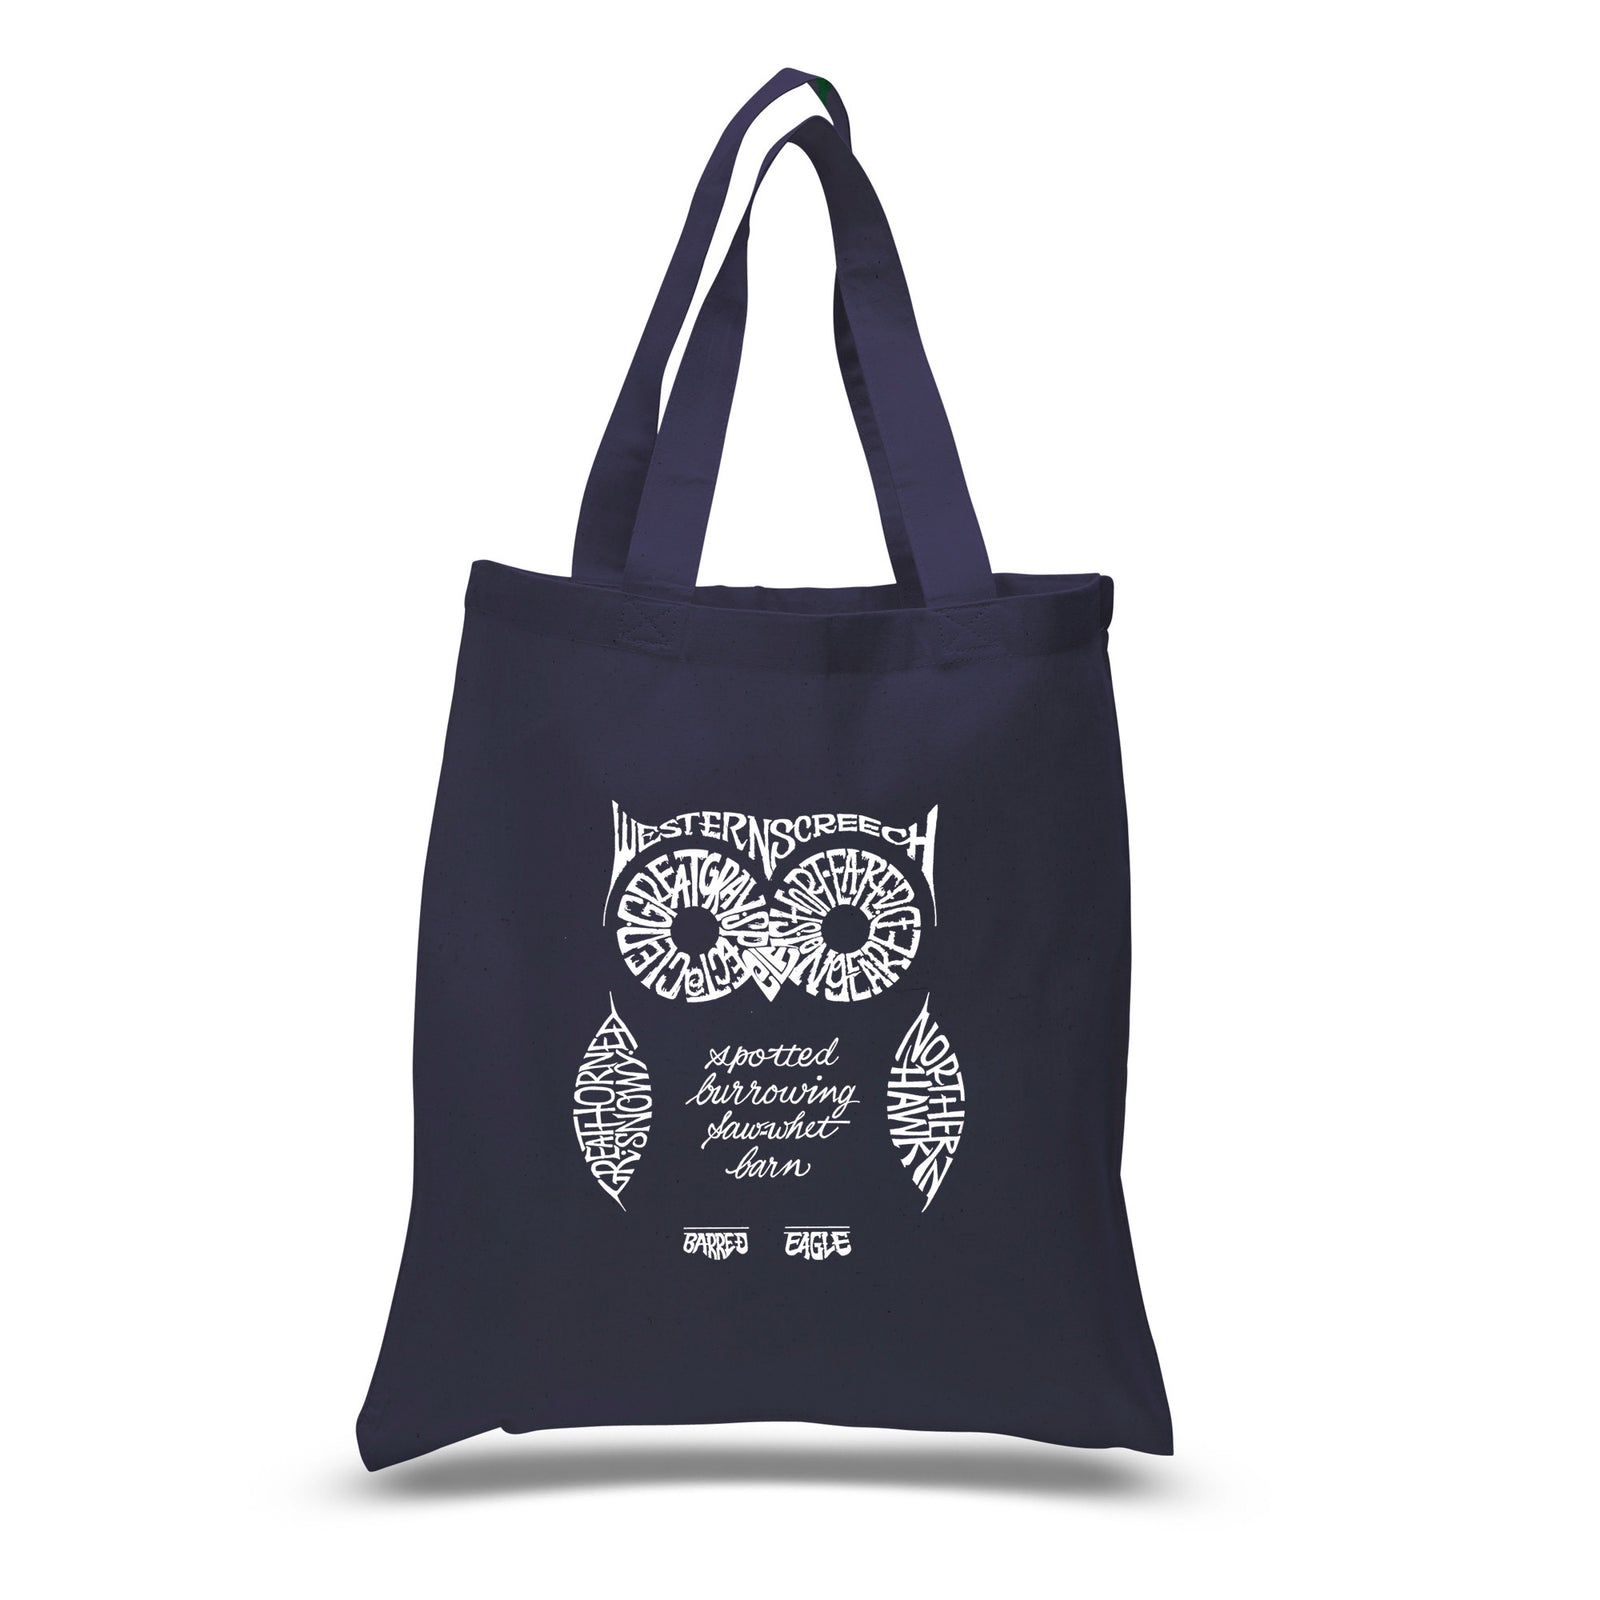 Los Angeles Pop Art Small Tote Bag - Owl